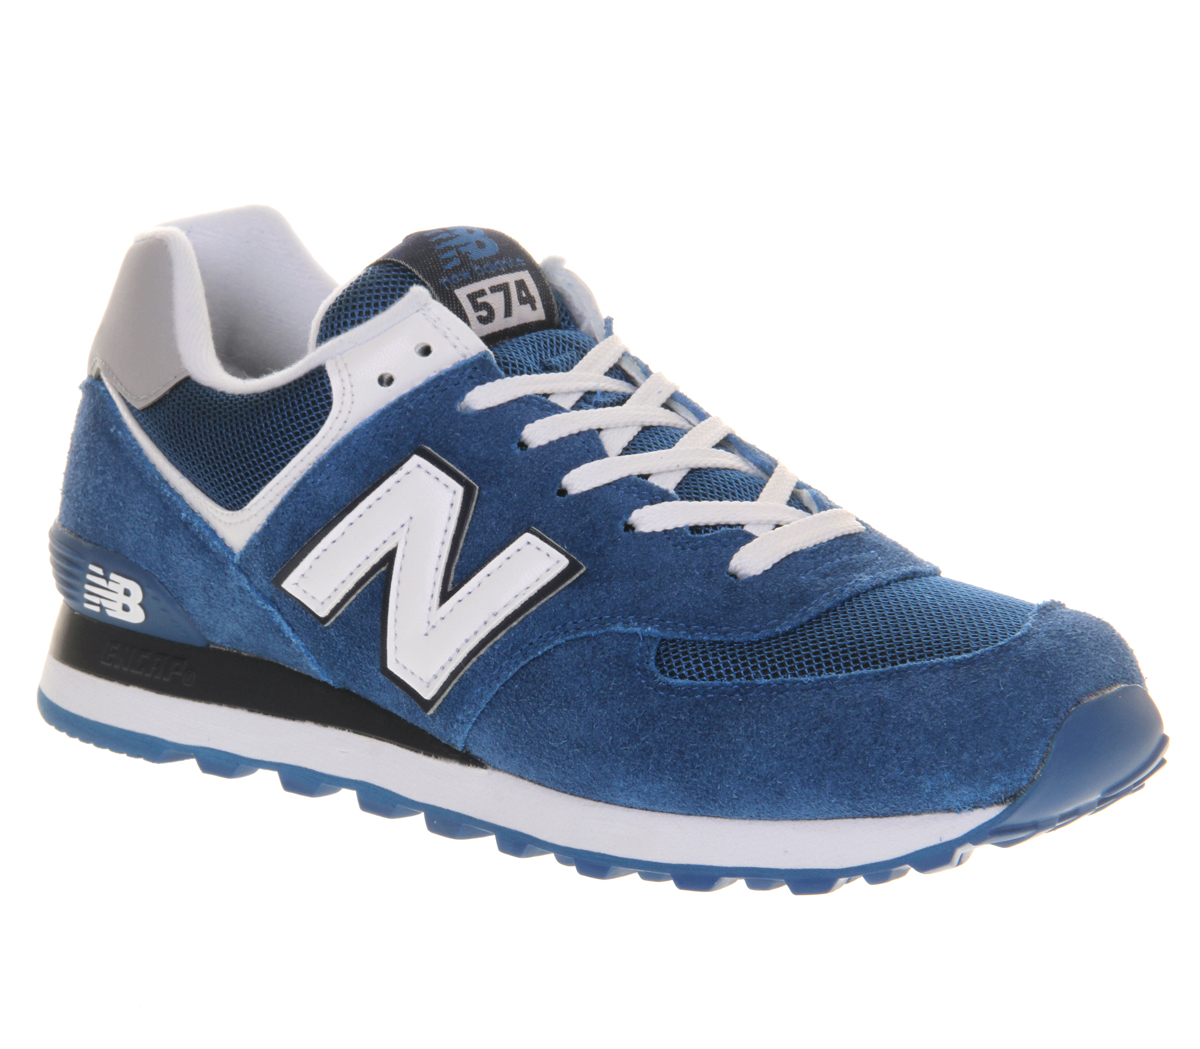 Mens-New-Balance-New-Balance-M574-Blue-White-Trainers-Shoes